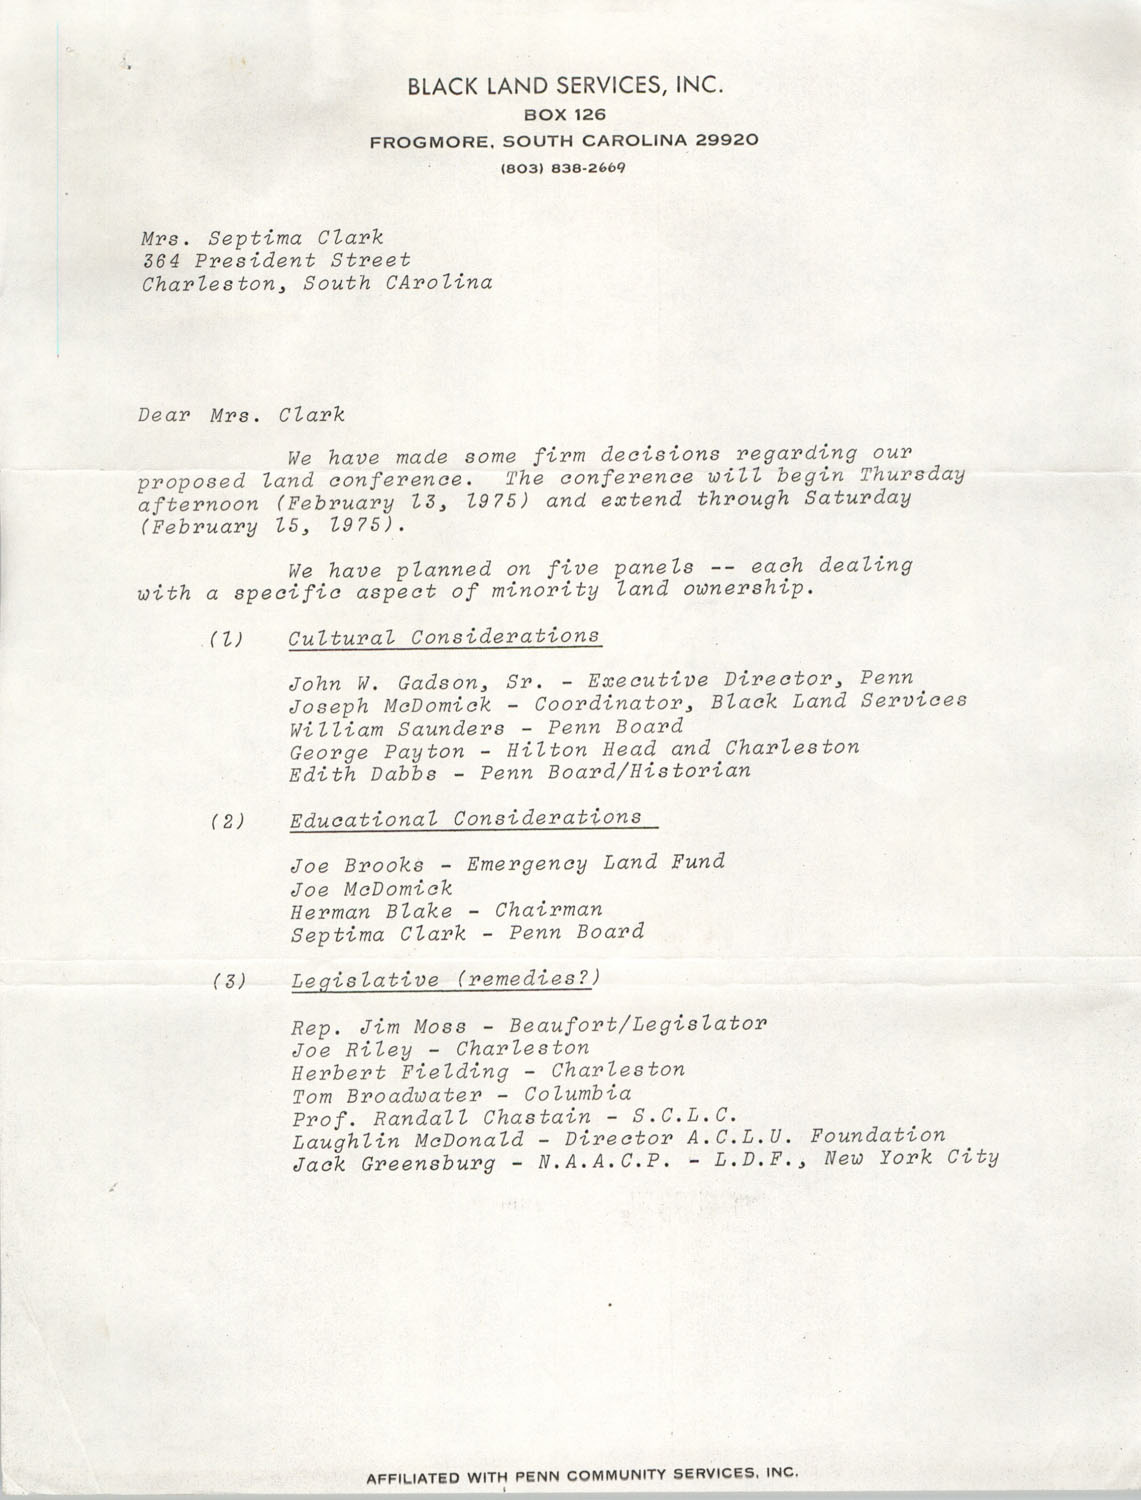 Letter from C. Scott Graber to Septima P. Clark, 1975